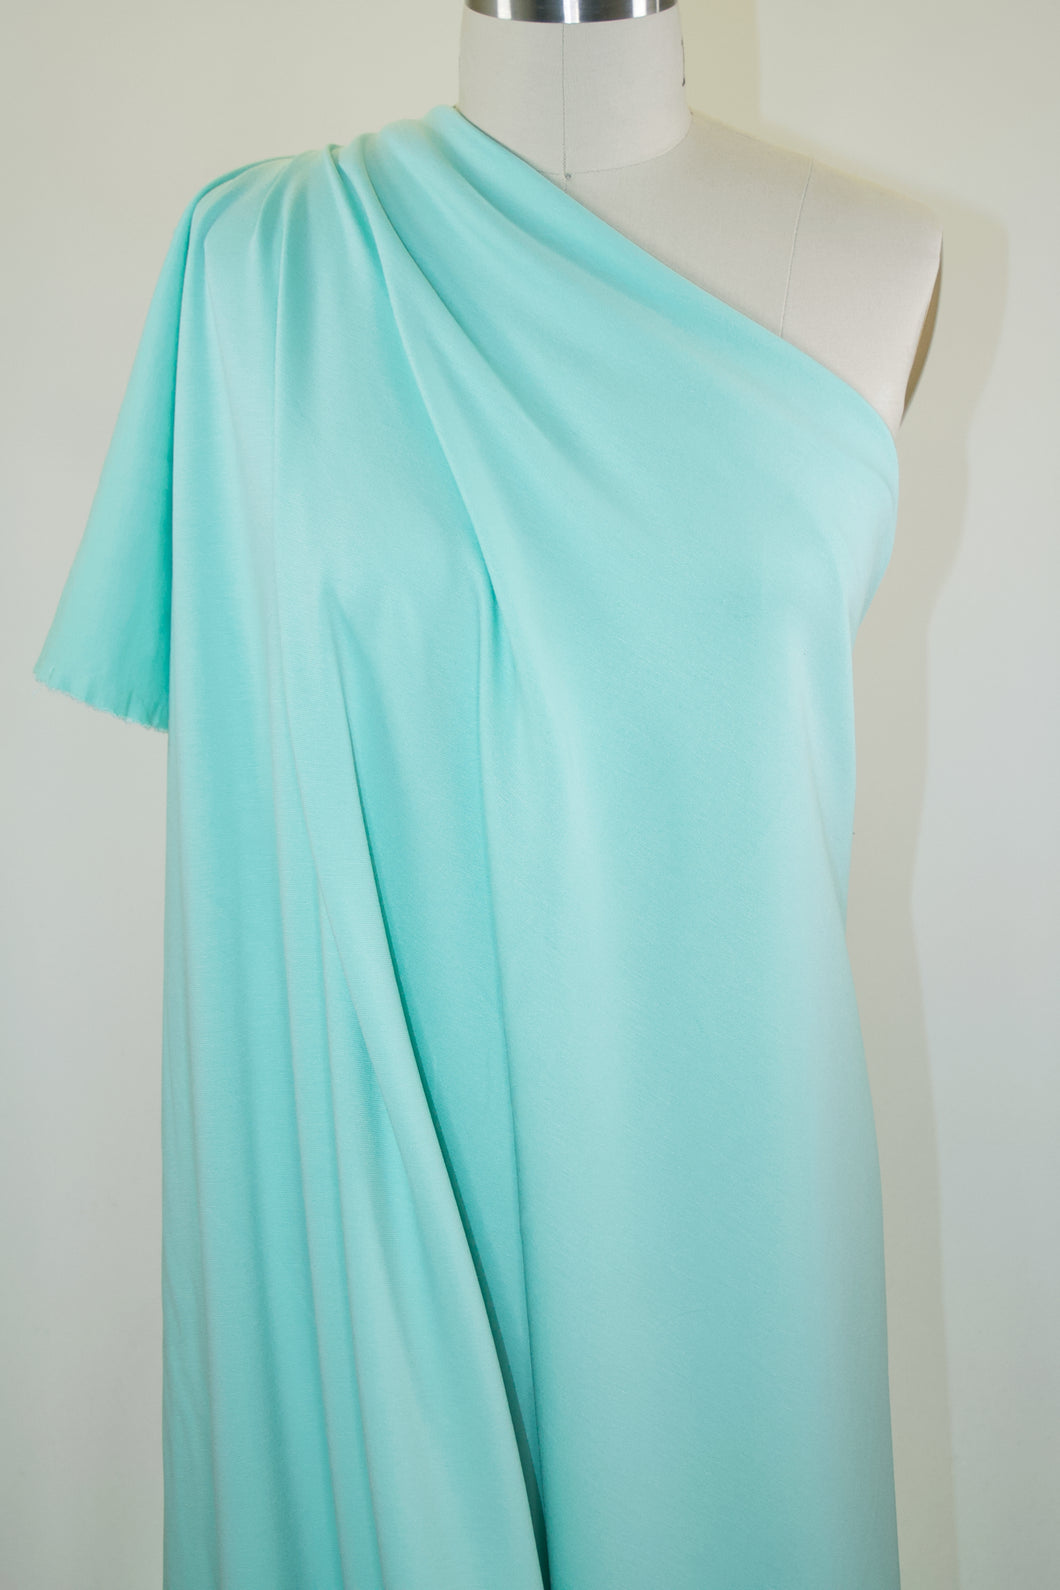 Designer Rayon Double Knit - Soft Mint